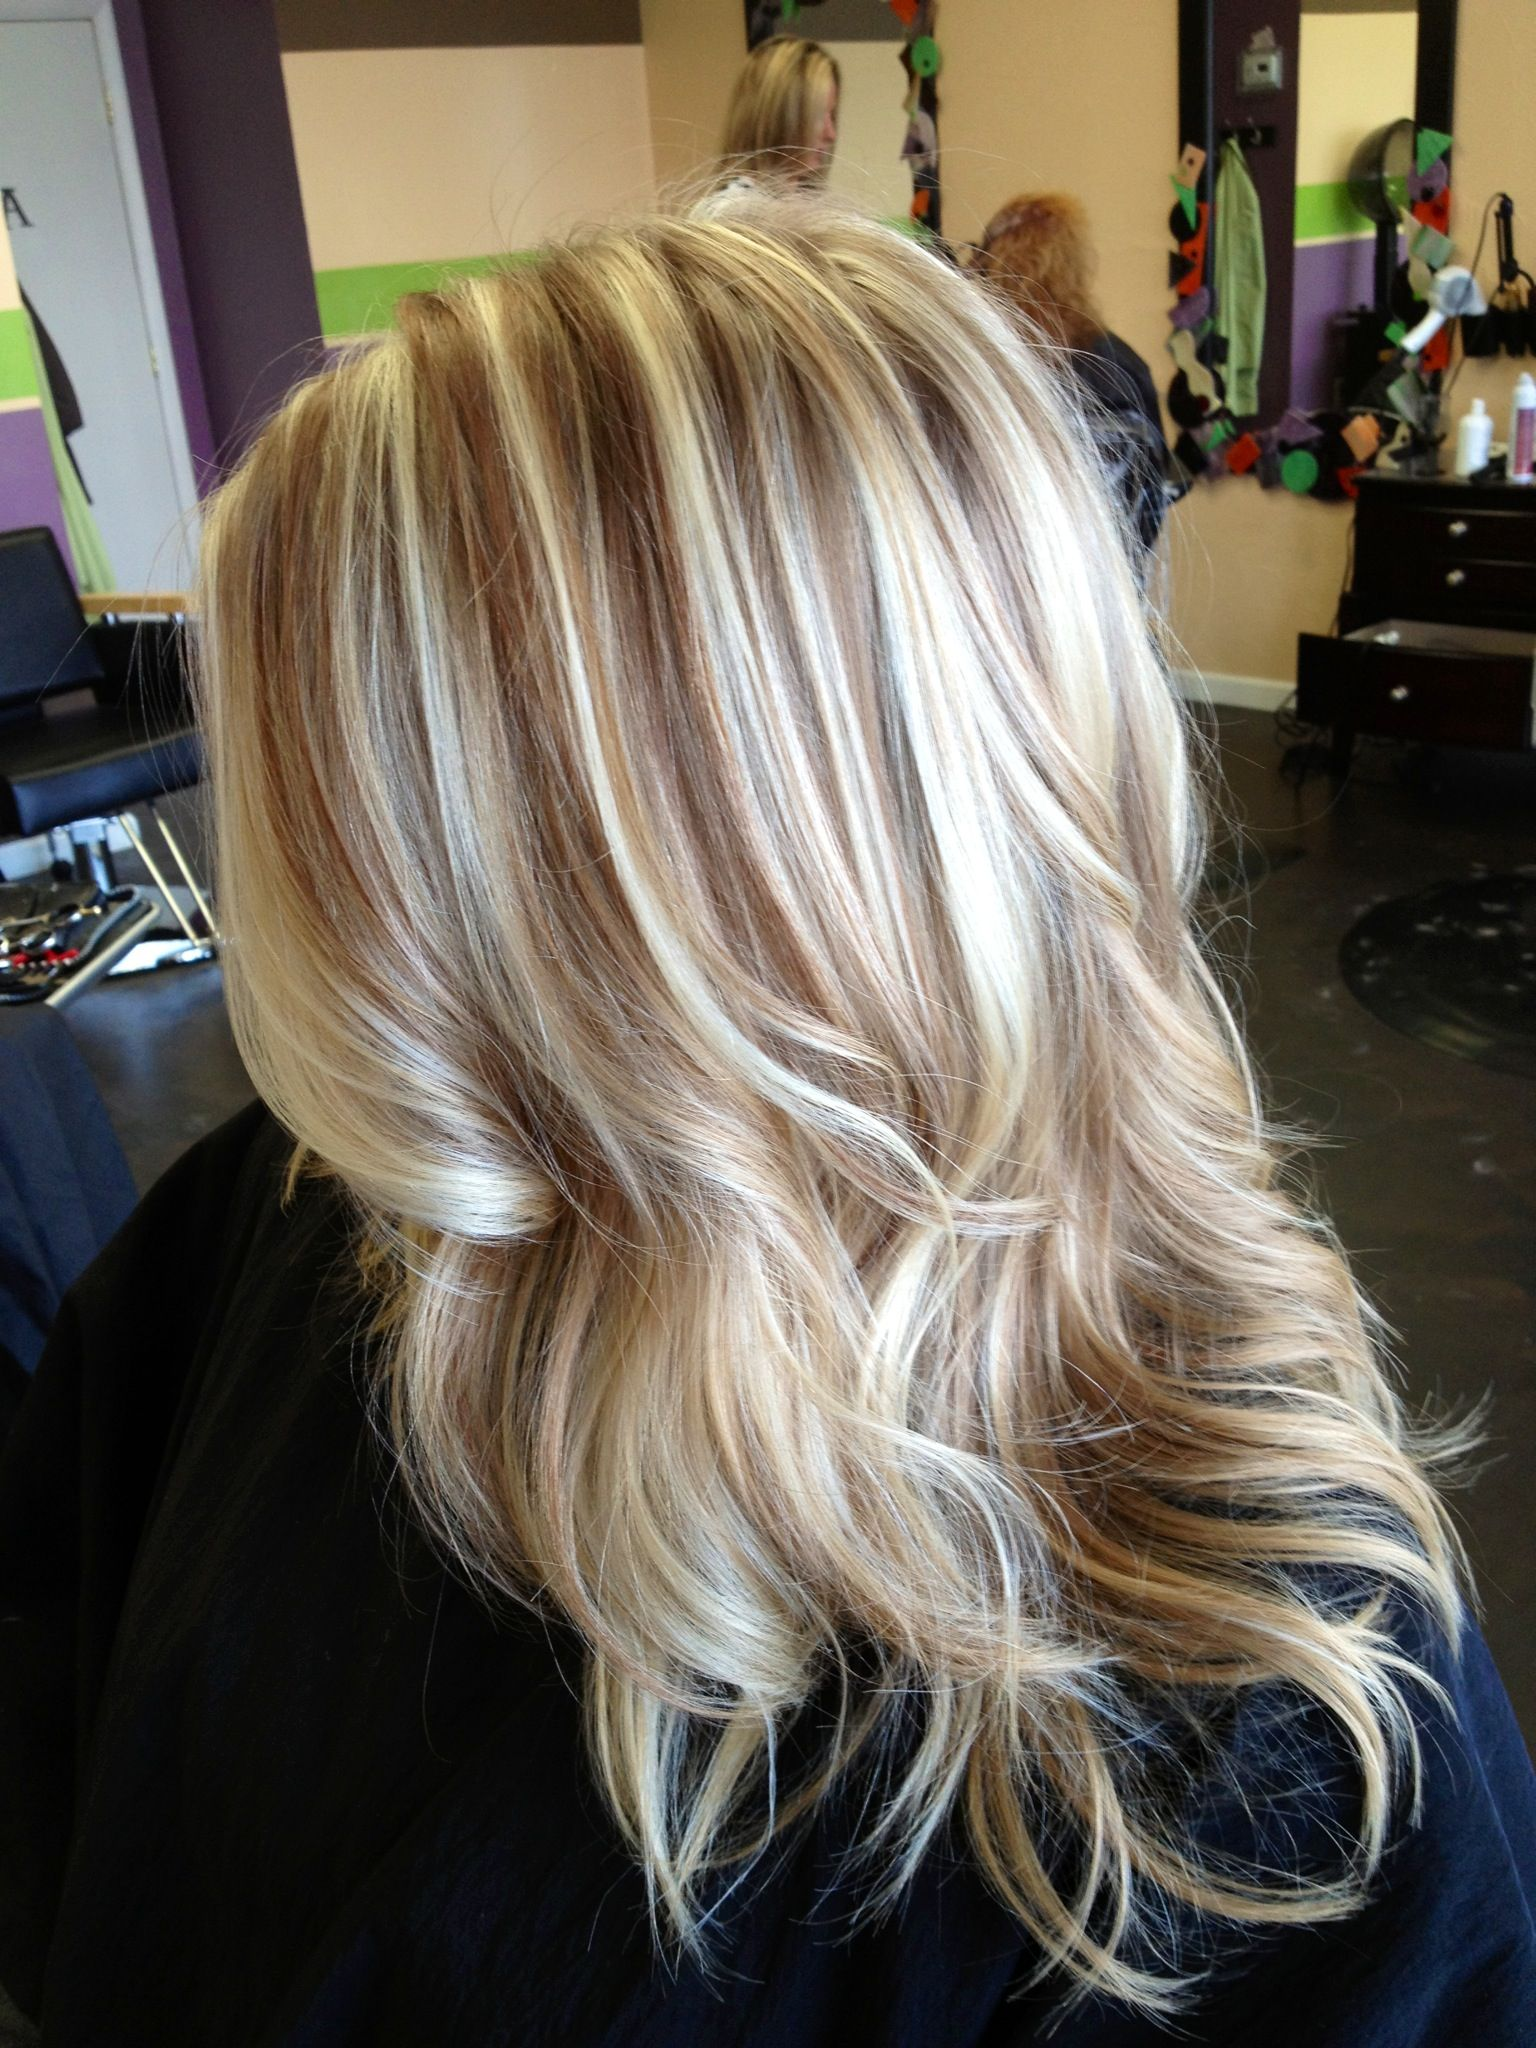 Pretty Blonde With Lowlights I Want This For My Hair Hair Styles Blonde Hair With Highlights Balayage Hair